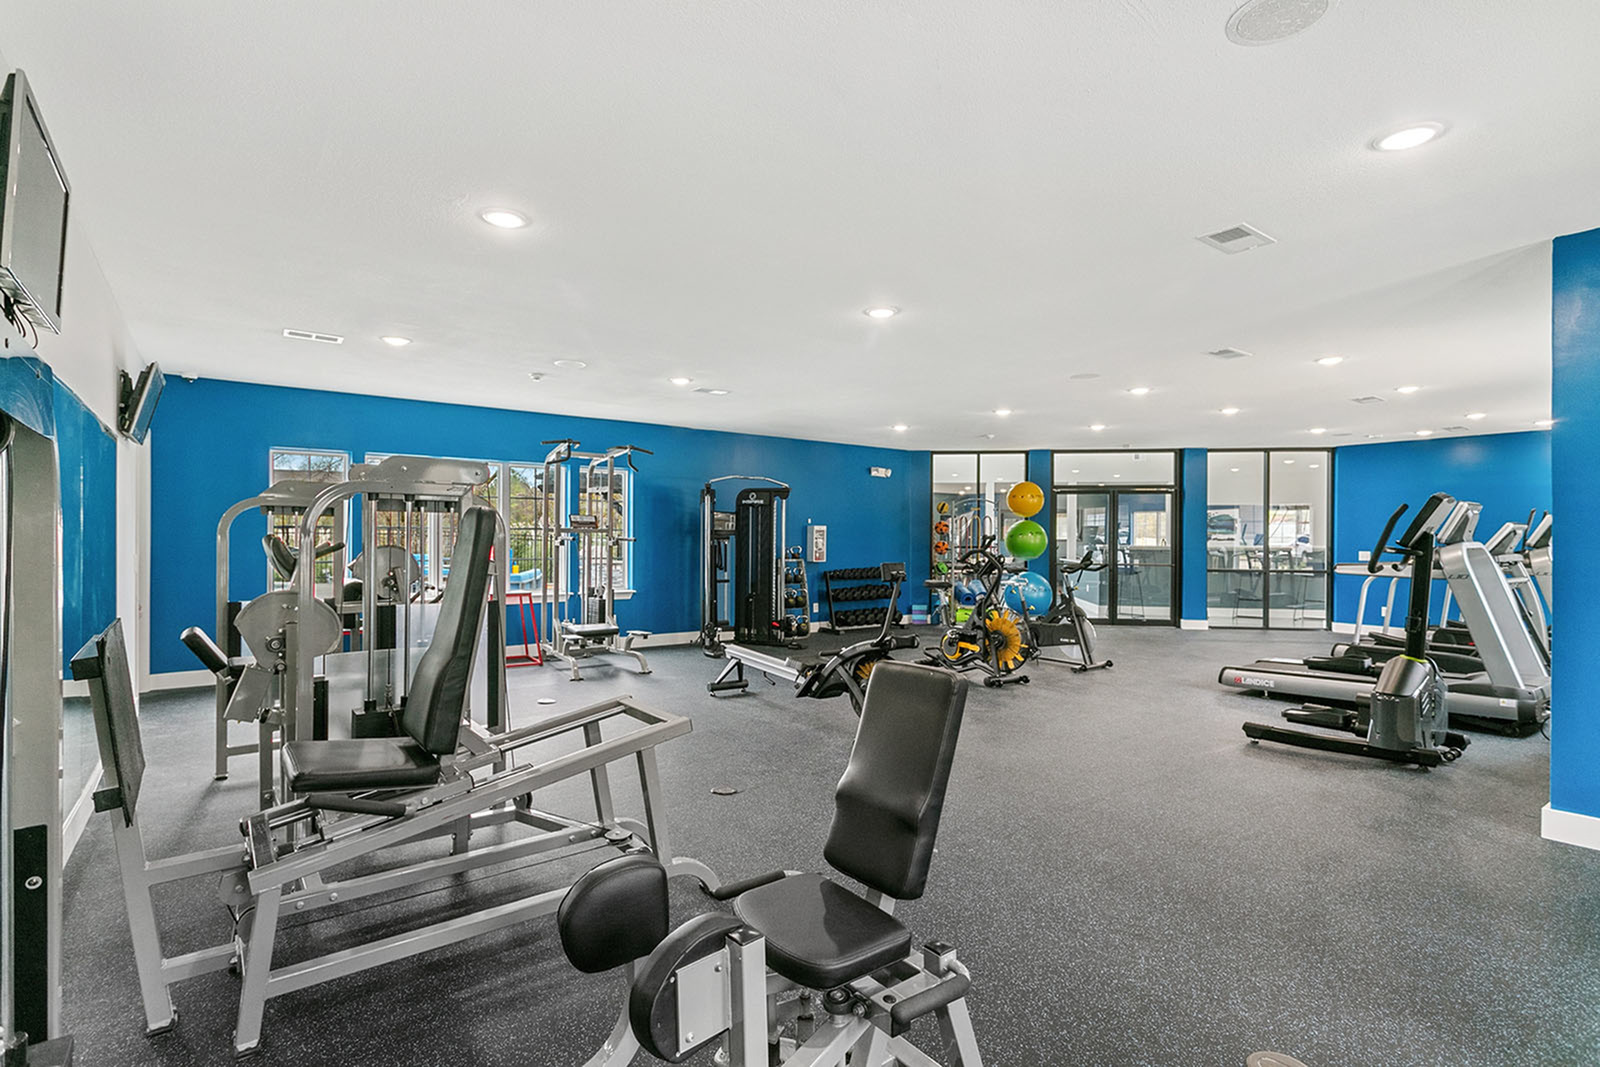 Image of Fitness Center for The Social Campus